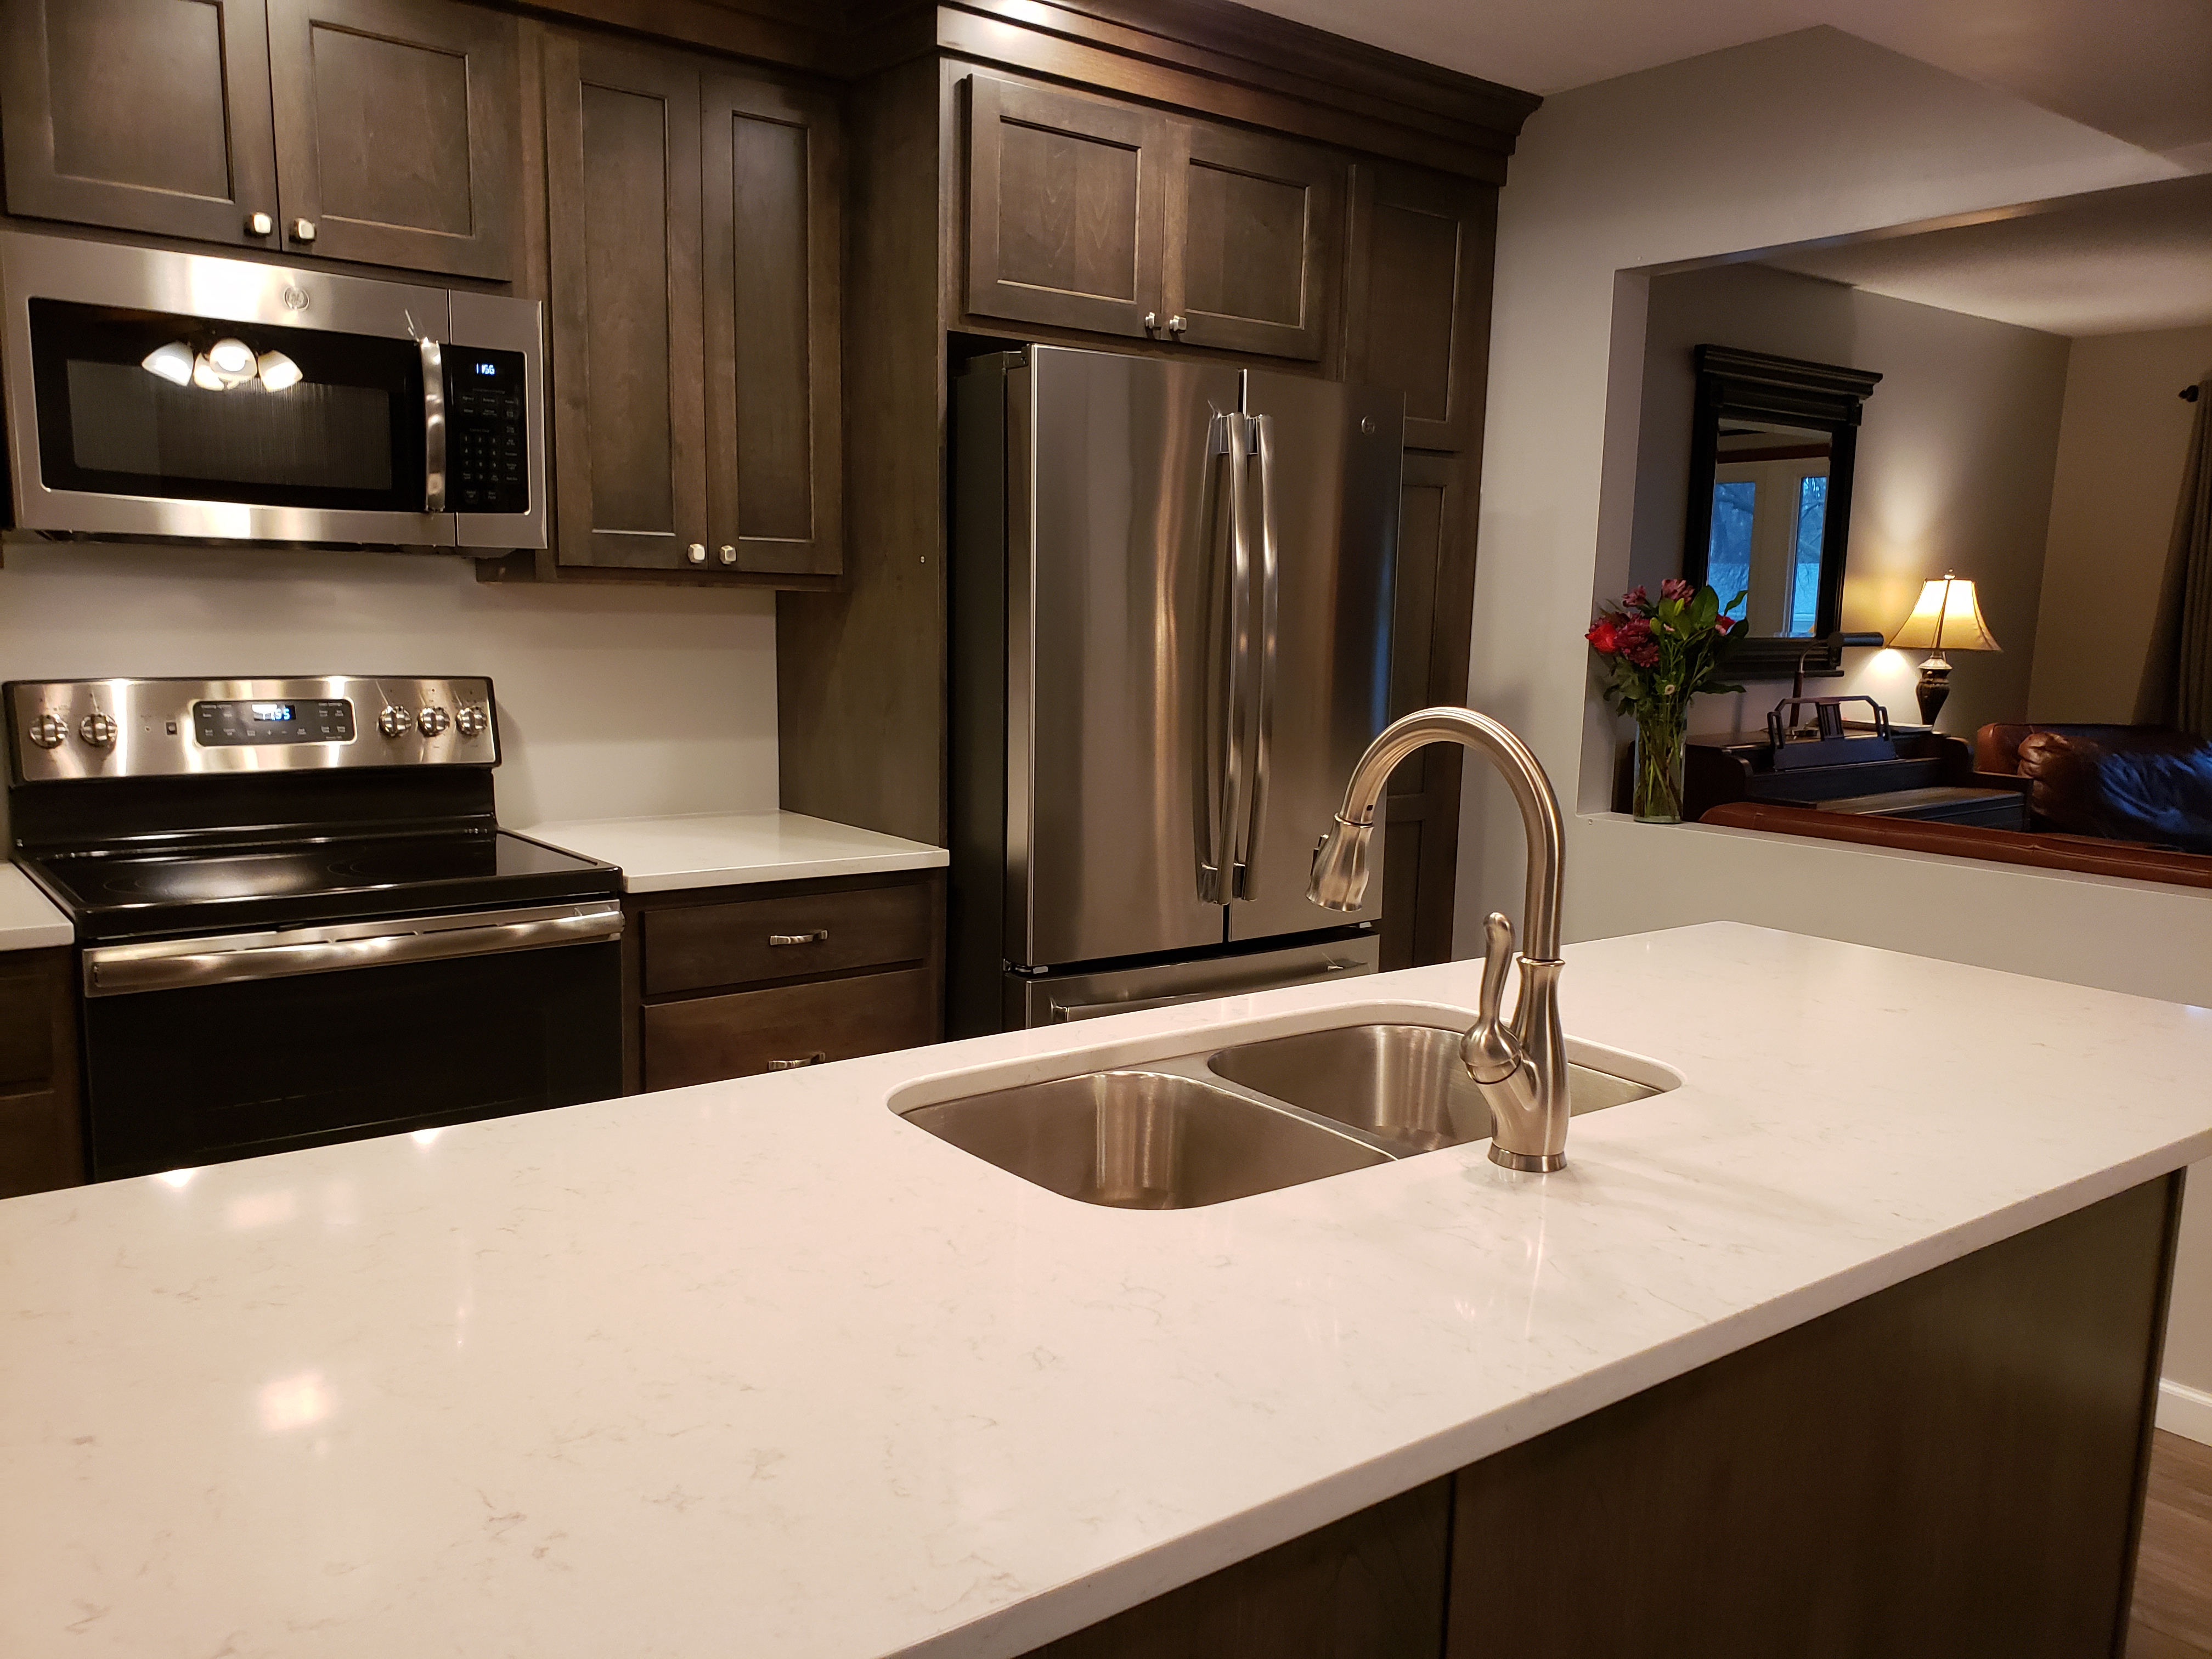 White countertop with dark cupboards